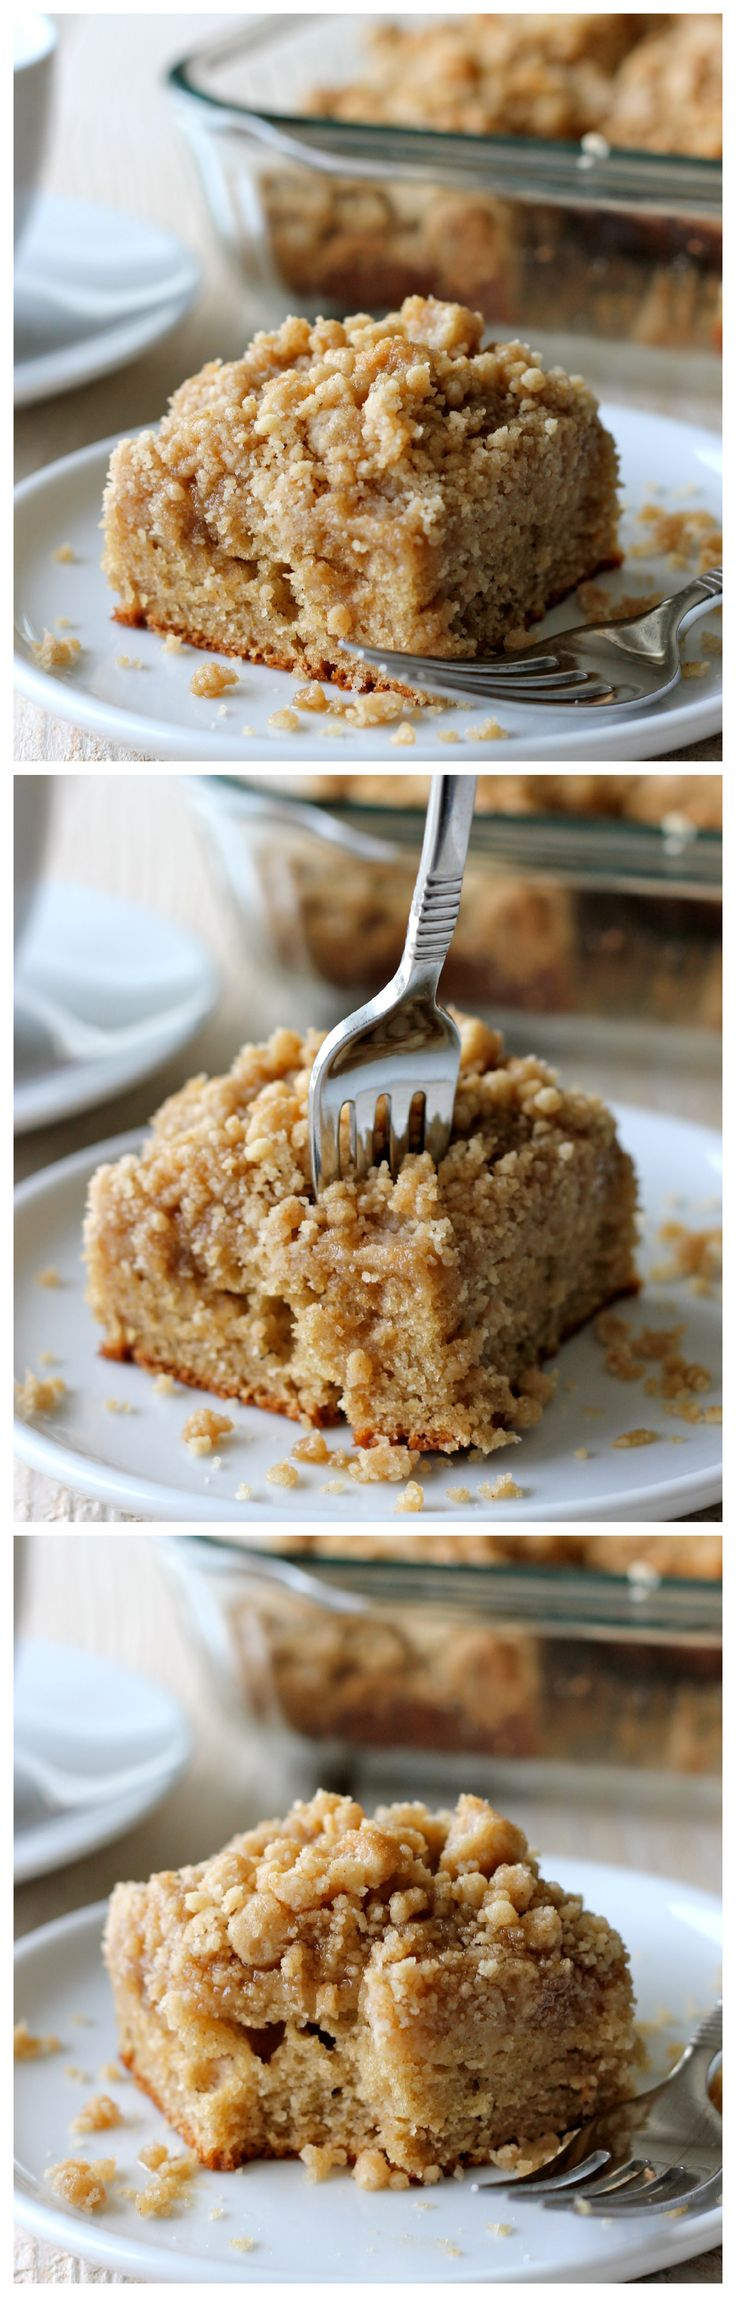 Coffee Cake with Crumble Topping and Brown Sugar Glaze - A coffee cake with a mile-high crumb topping that everyone will love!